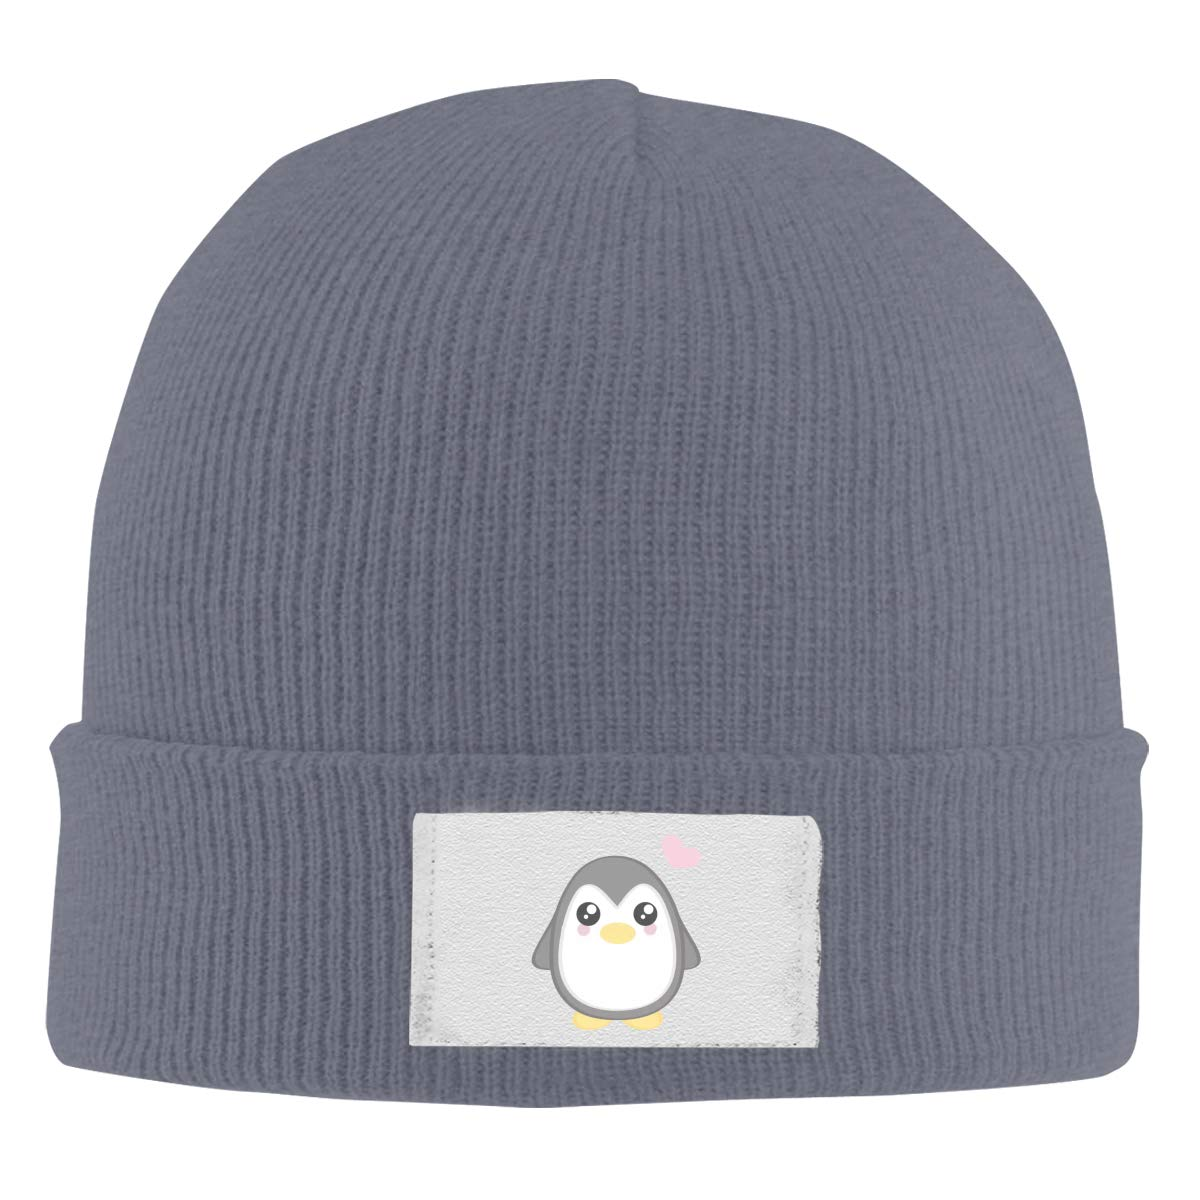 Unisex Stylish Slouch Beanie Hats Black Cute Penguin Top Level Beanie Men Women